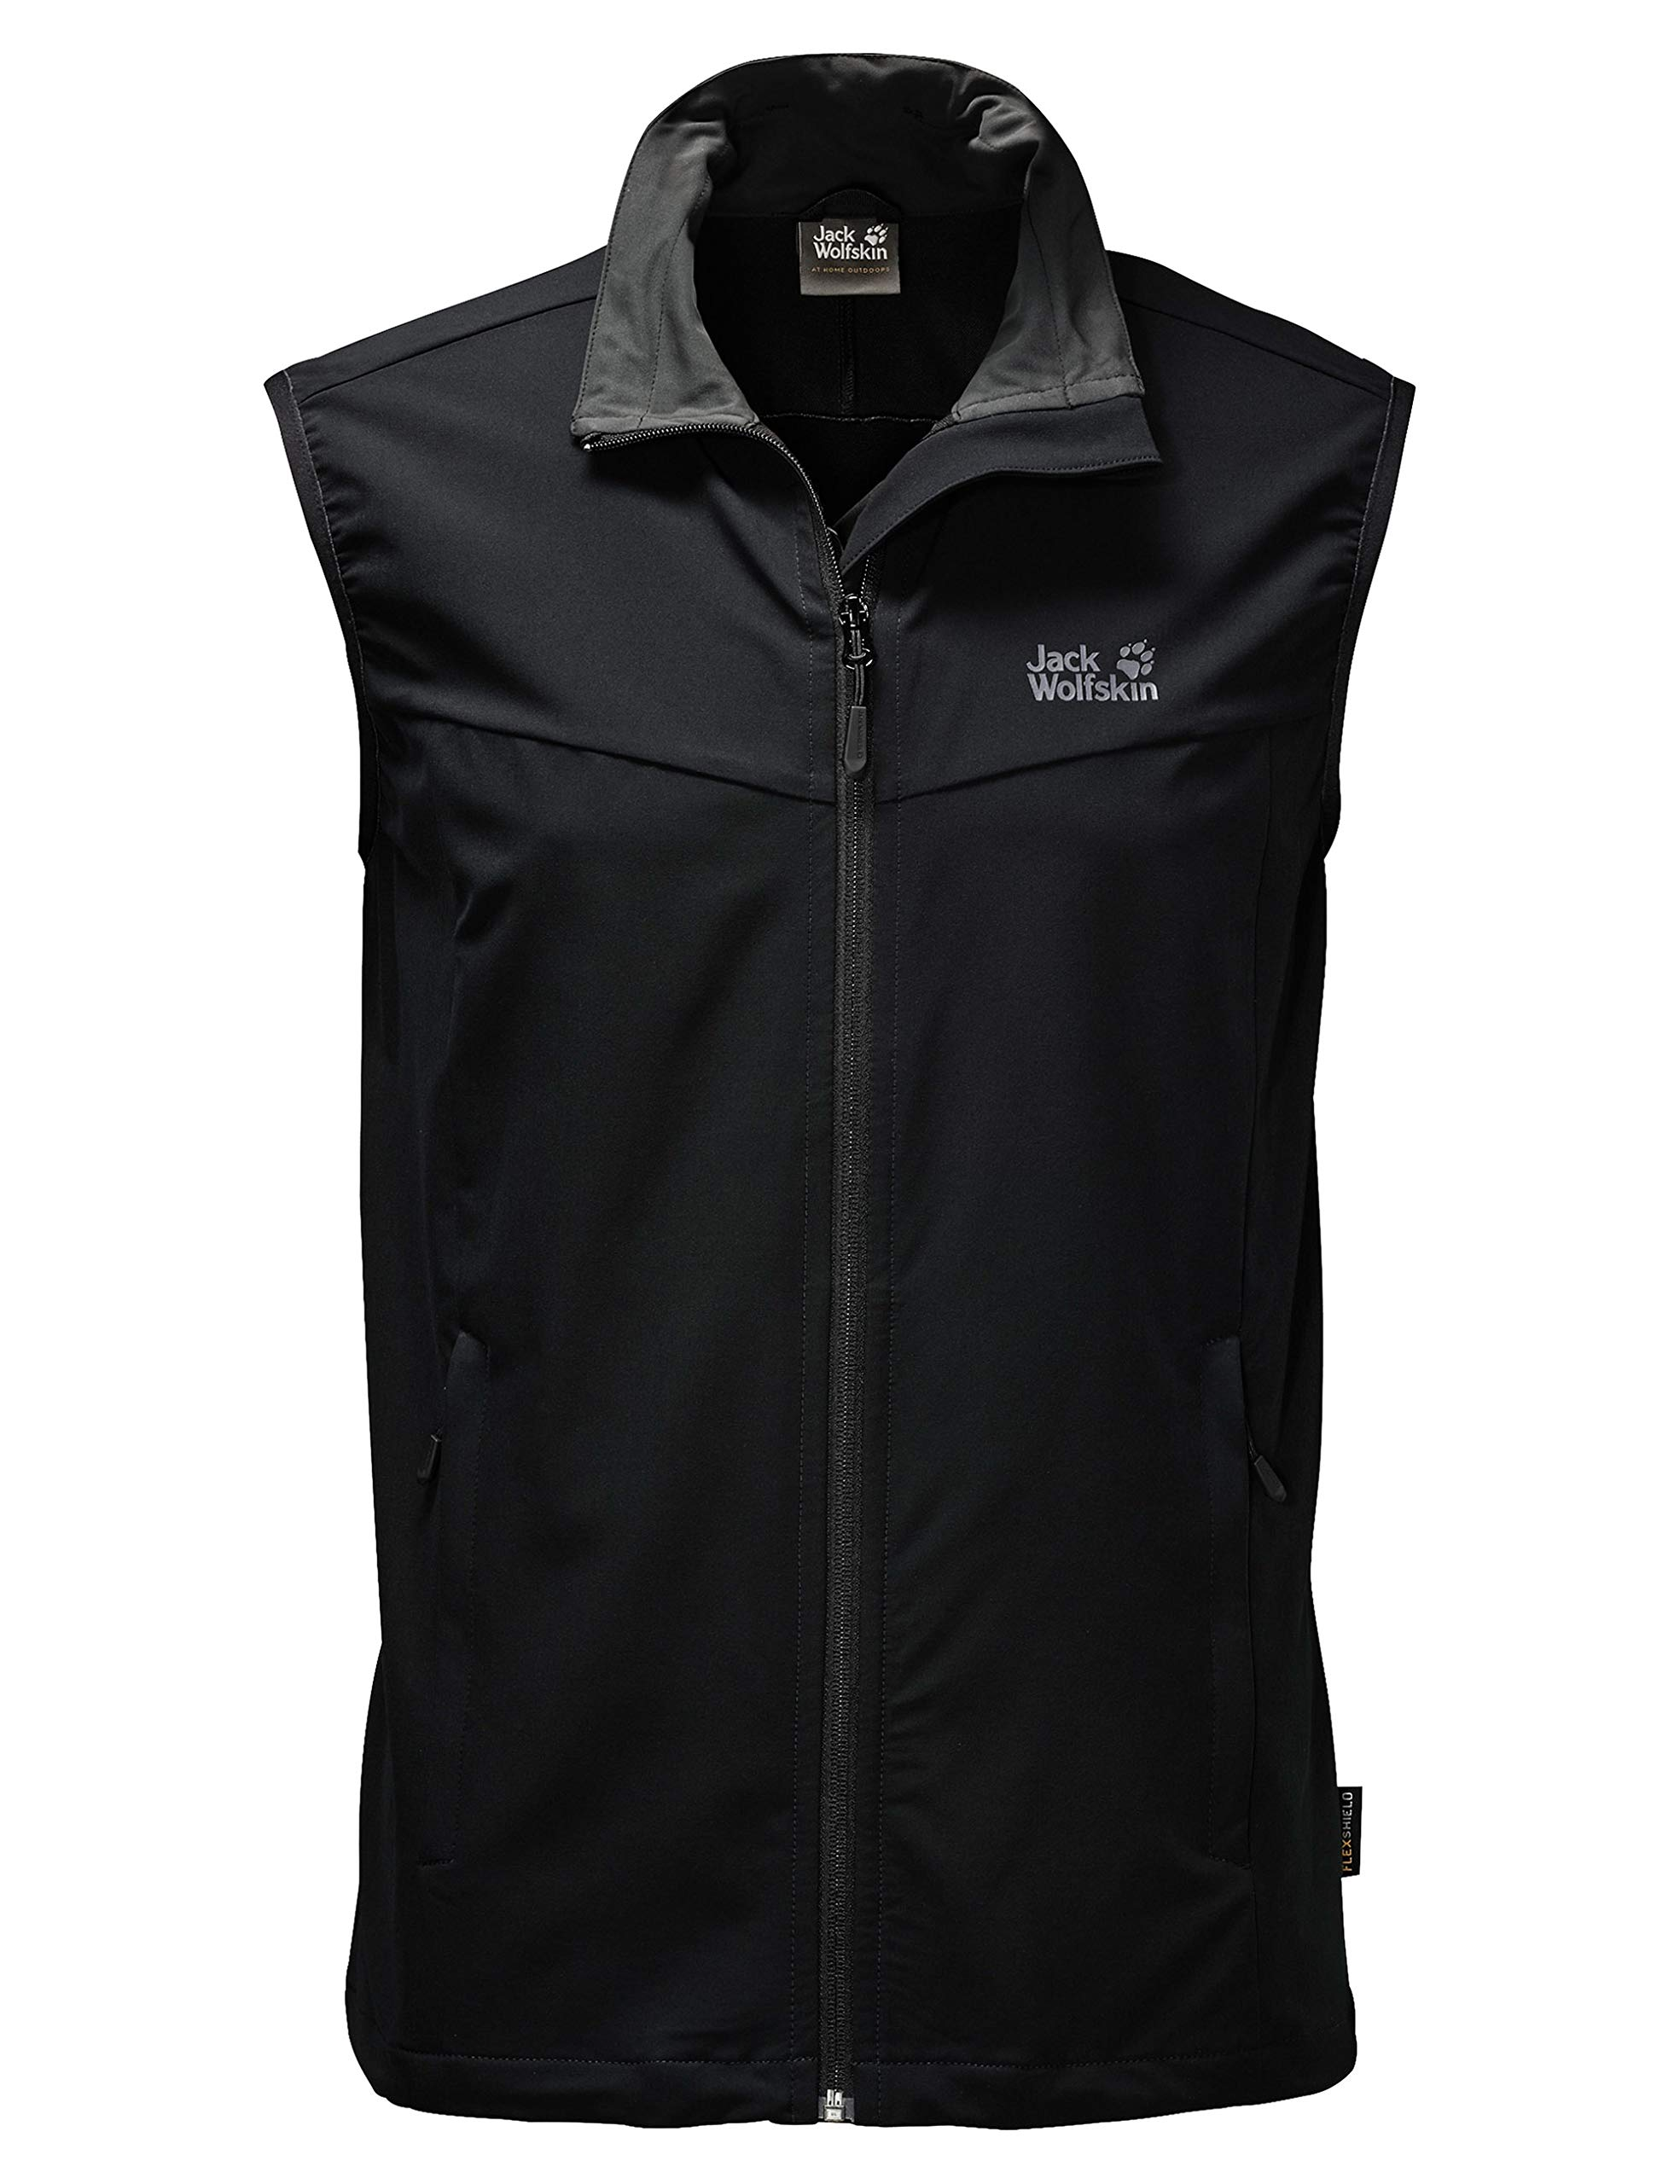 Jack Wolfskin Men's Activate Vest, Black, 3X-Large by Jack Wolfskin